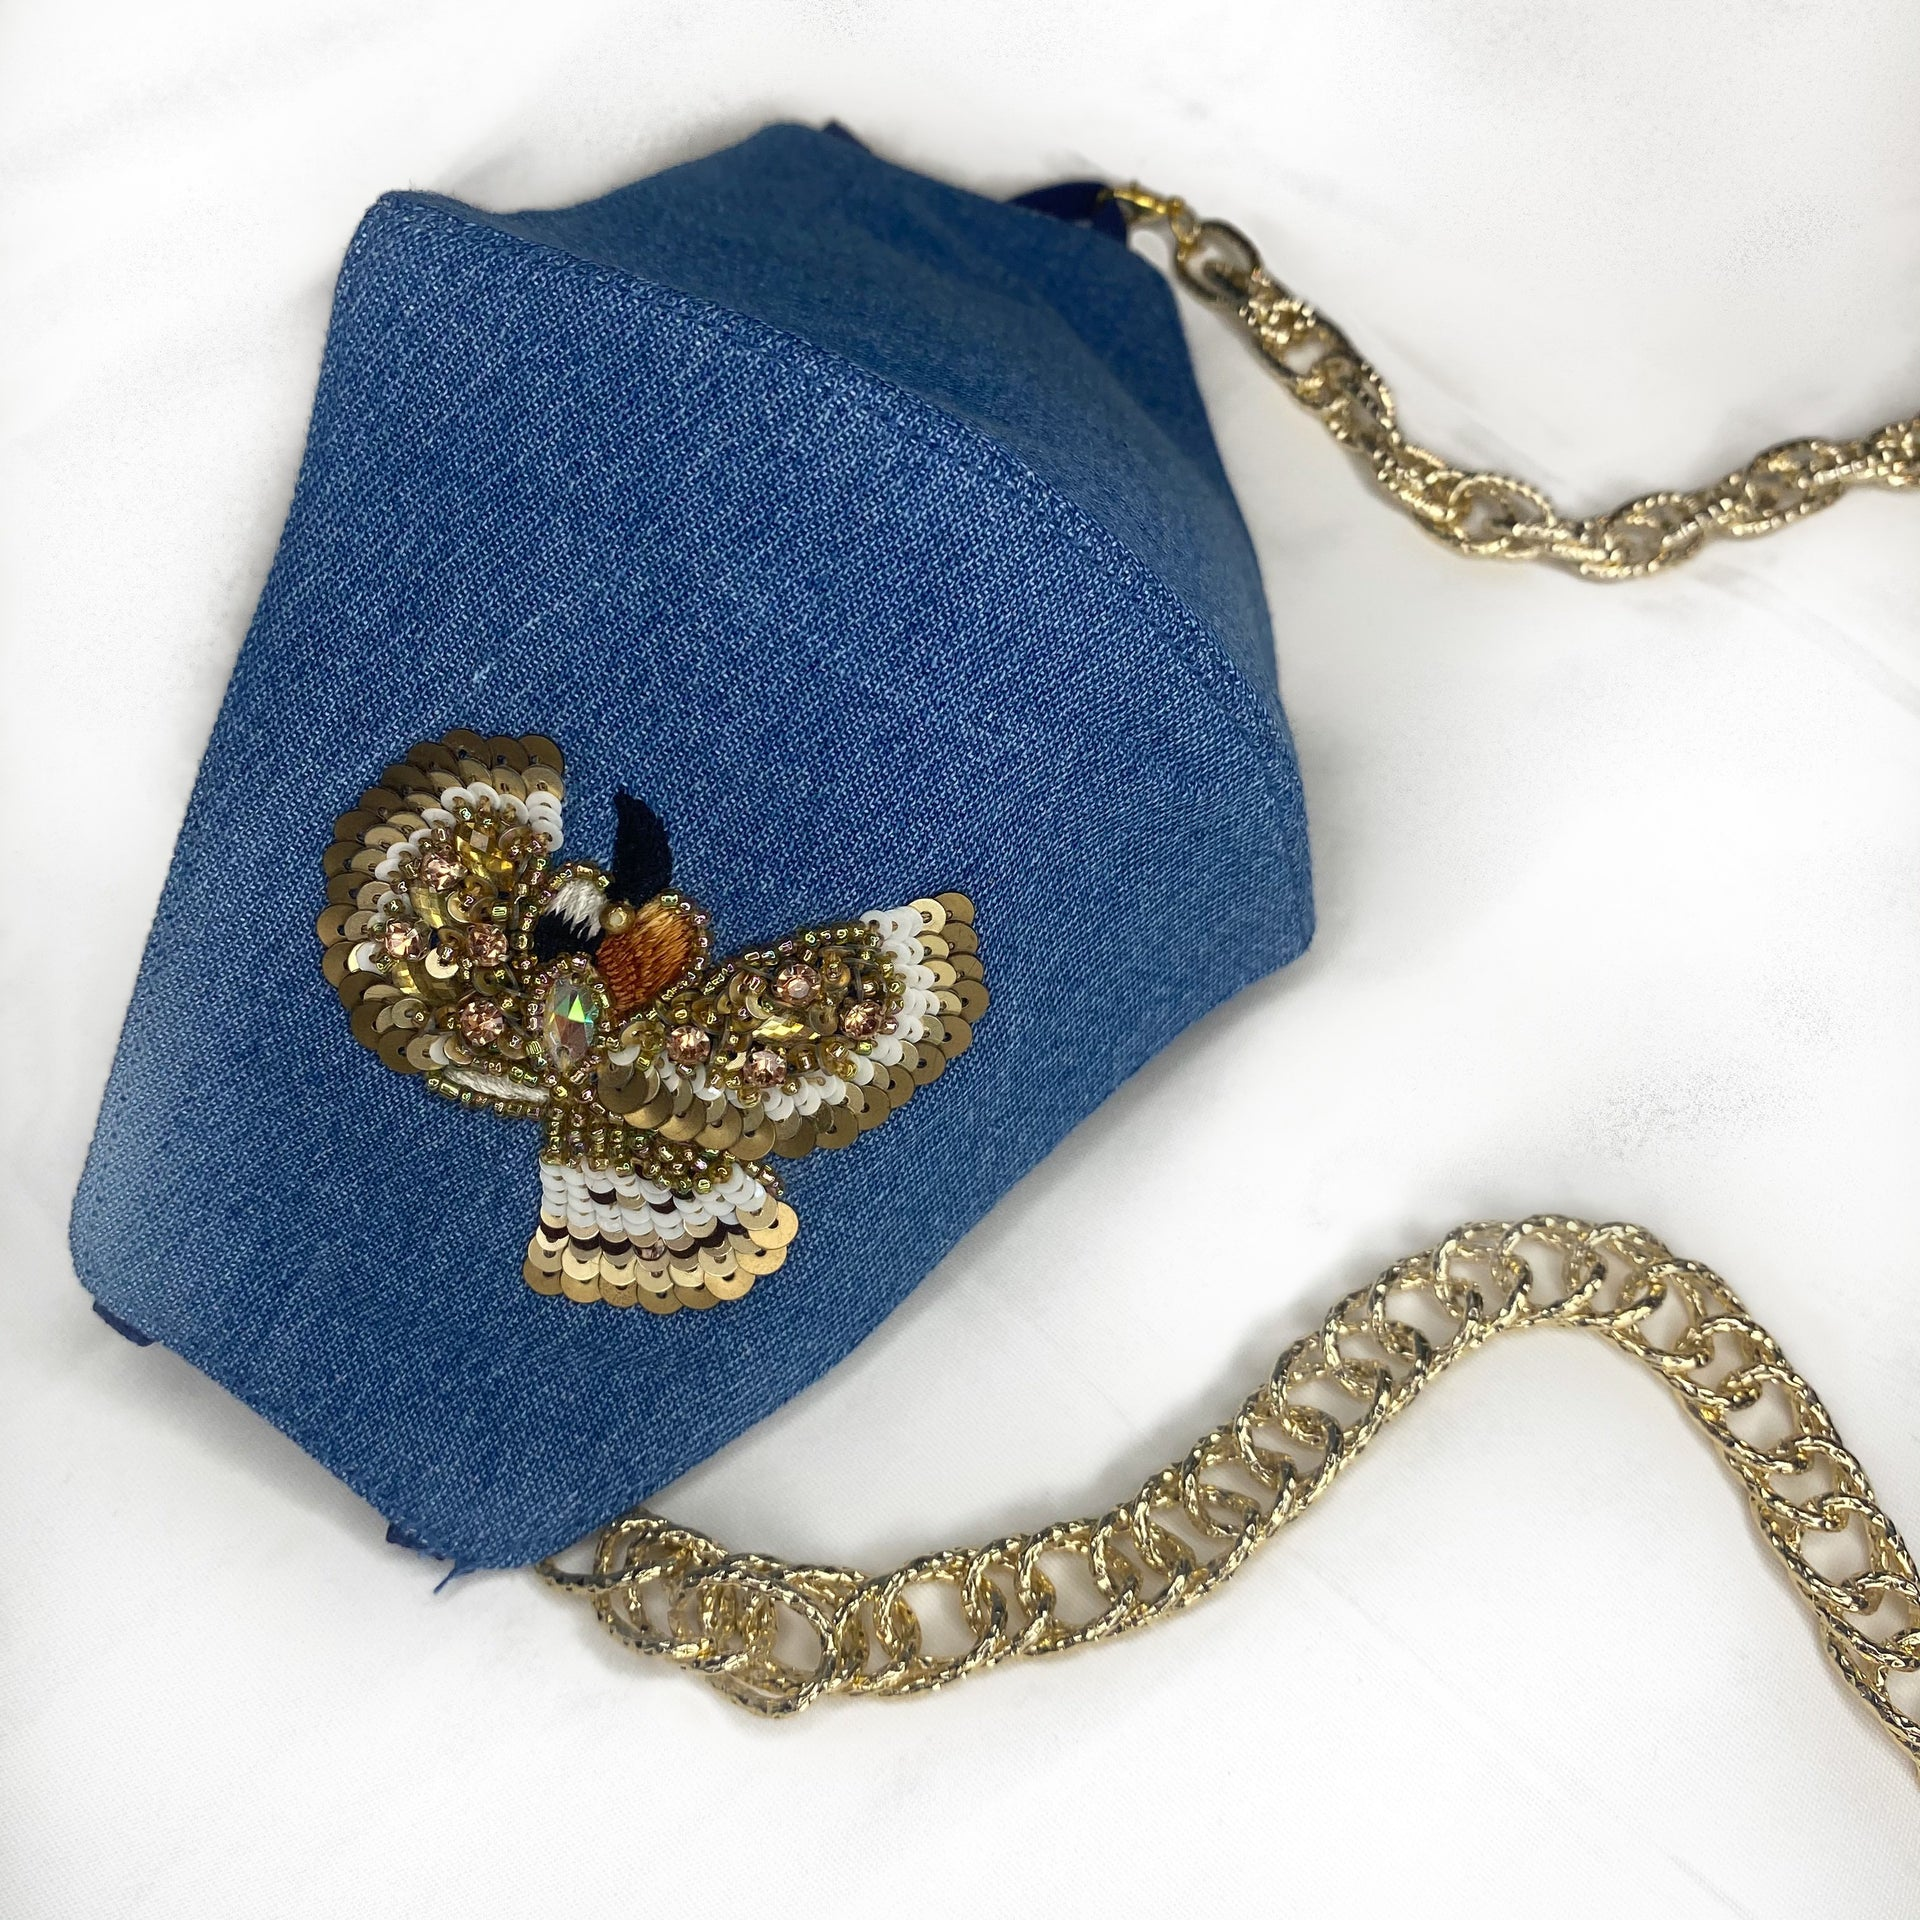 Embroidered Denim Mask With Chain - Gold Bird